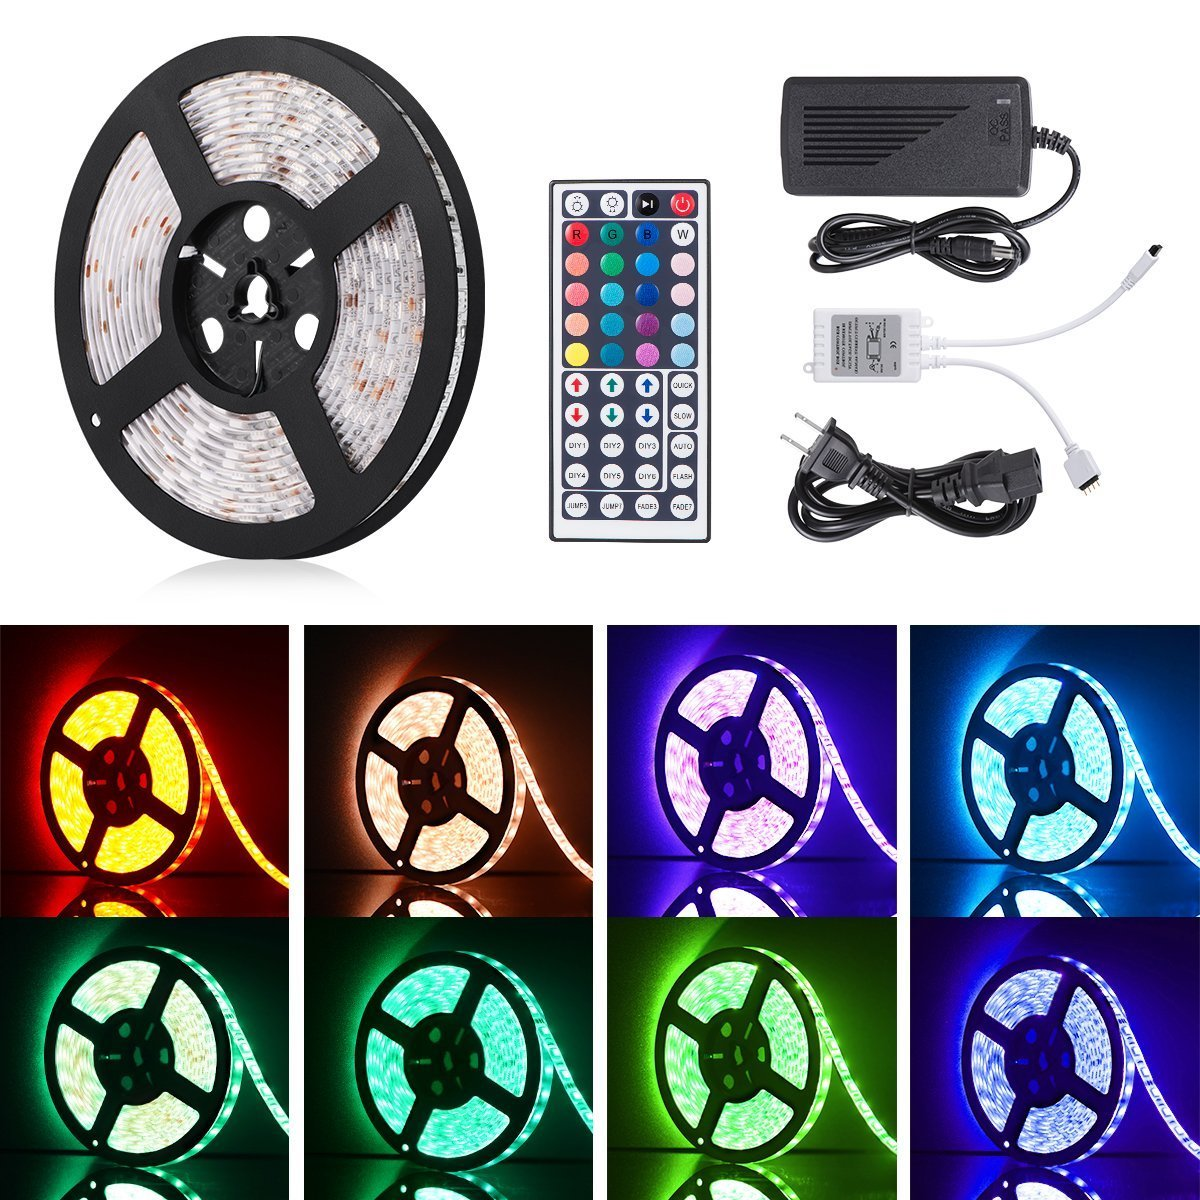 Boomile 16.4ft 12V Flexible LED Light Strip, LED Tape, RGB 300 Units SMD 5050 LEDs, Waterproof, LED Ribbon, LED Light Strips, For Home/Kitchen/Car/Bar, Power Adapter Included